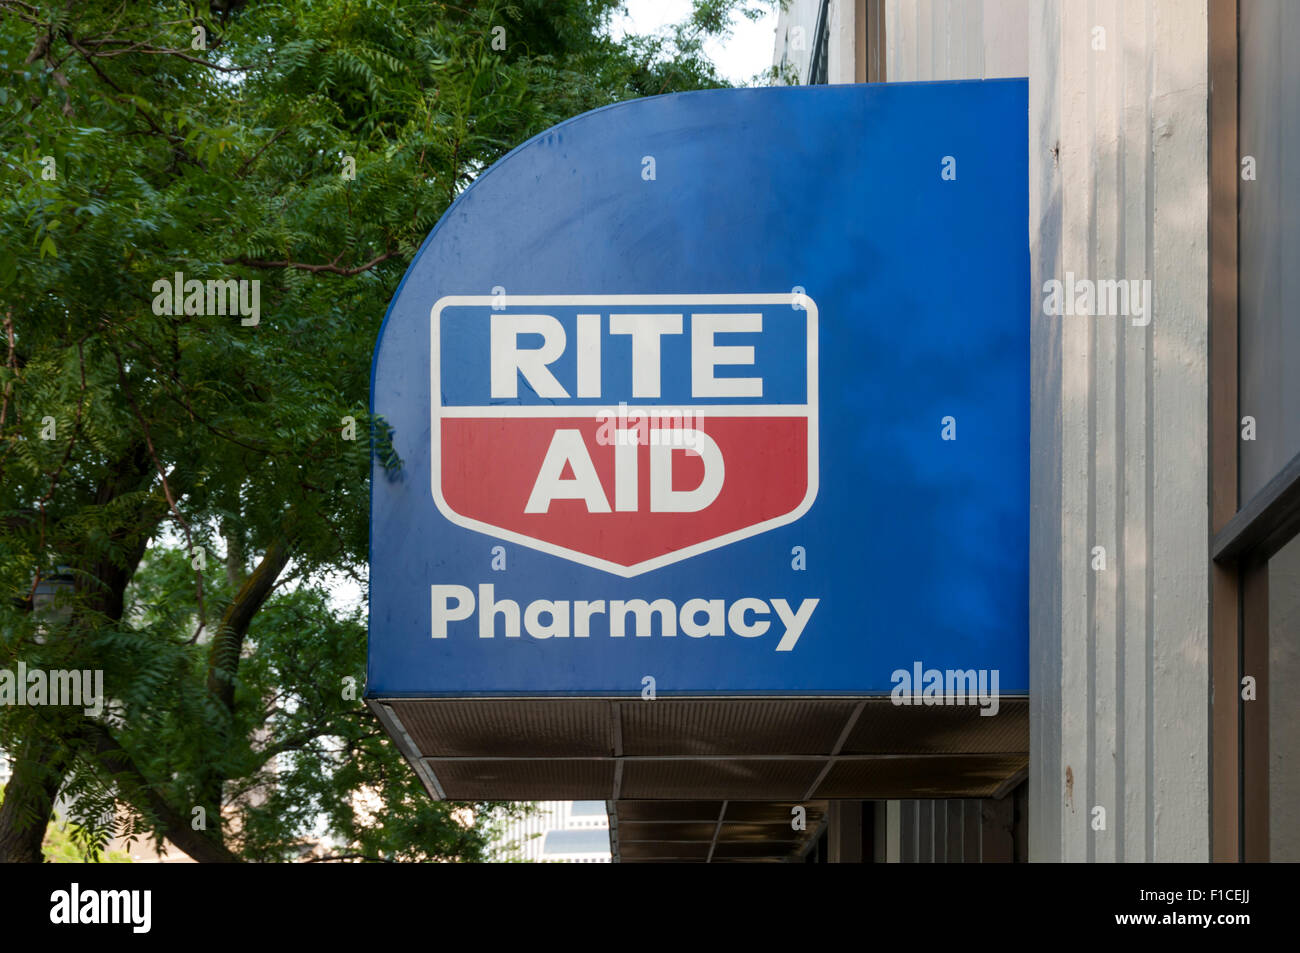 A sign for the Rite Aid drugstore chain in America. - Stock Image